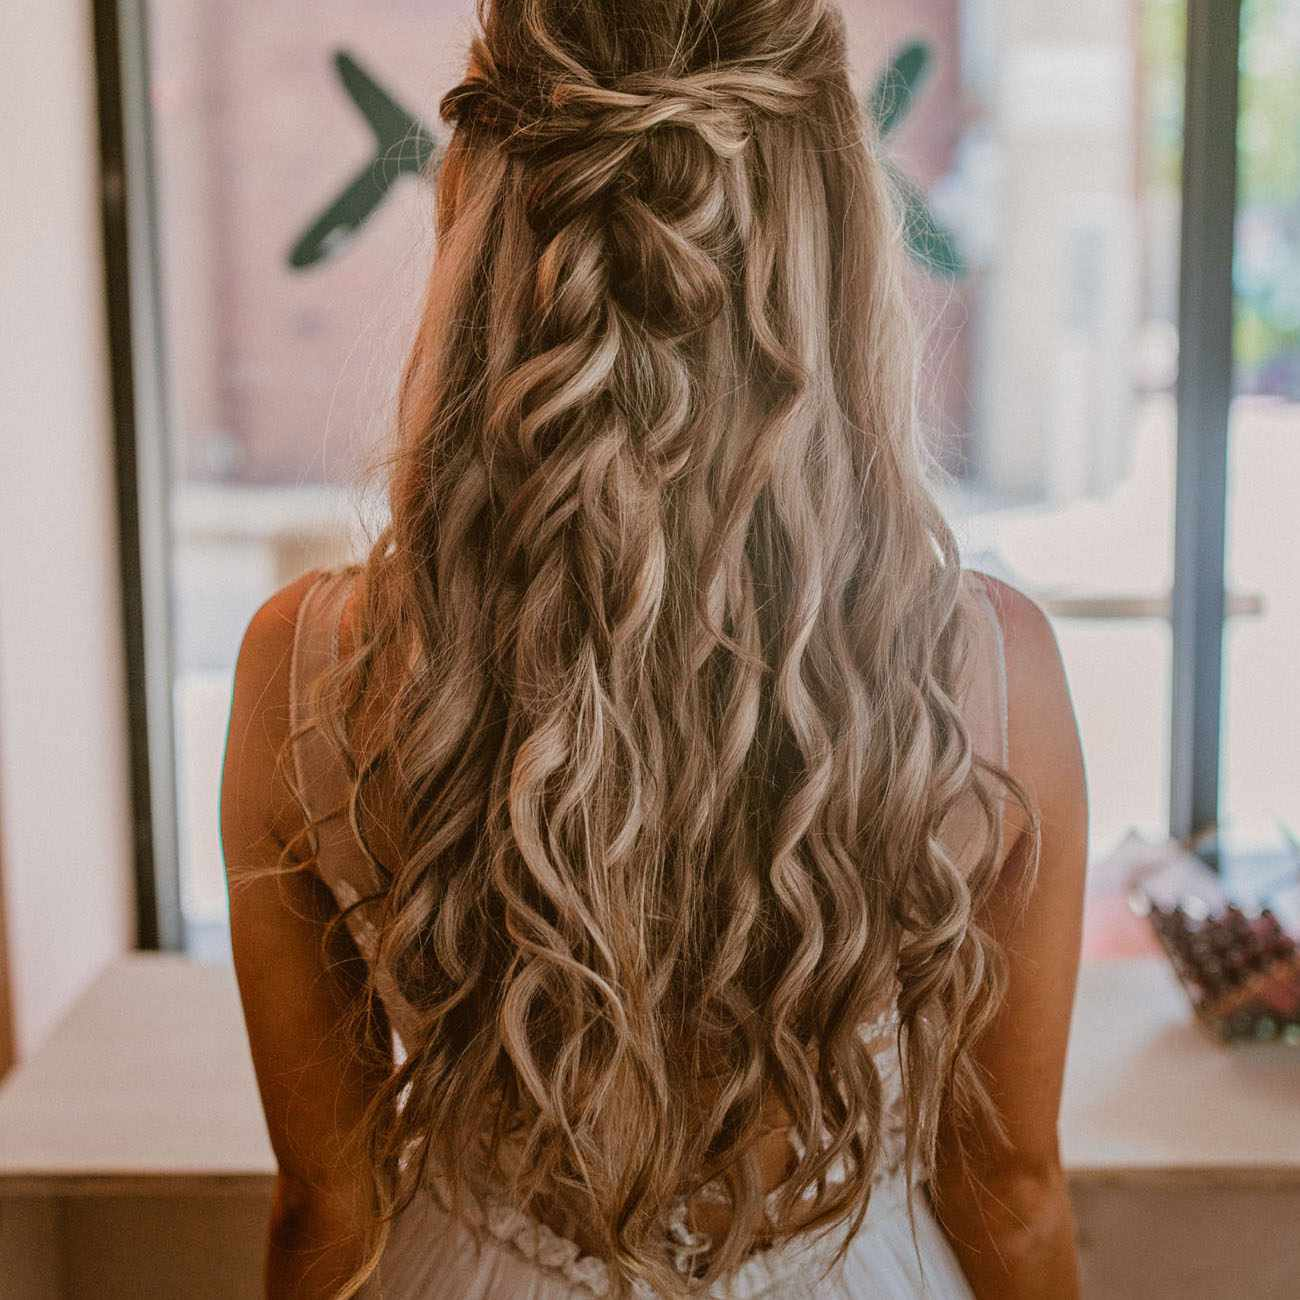 35 Wedding Hairstyles For Brides With Long Hair